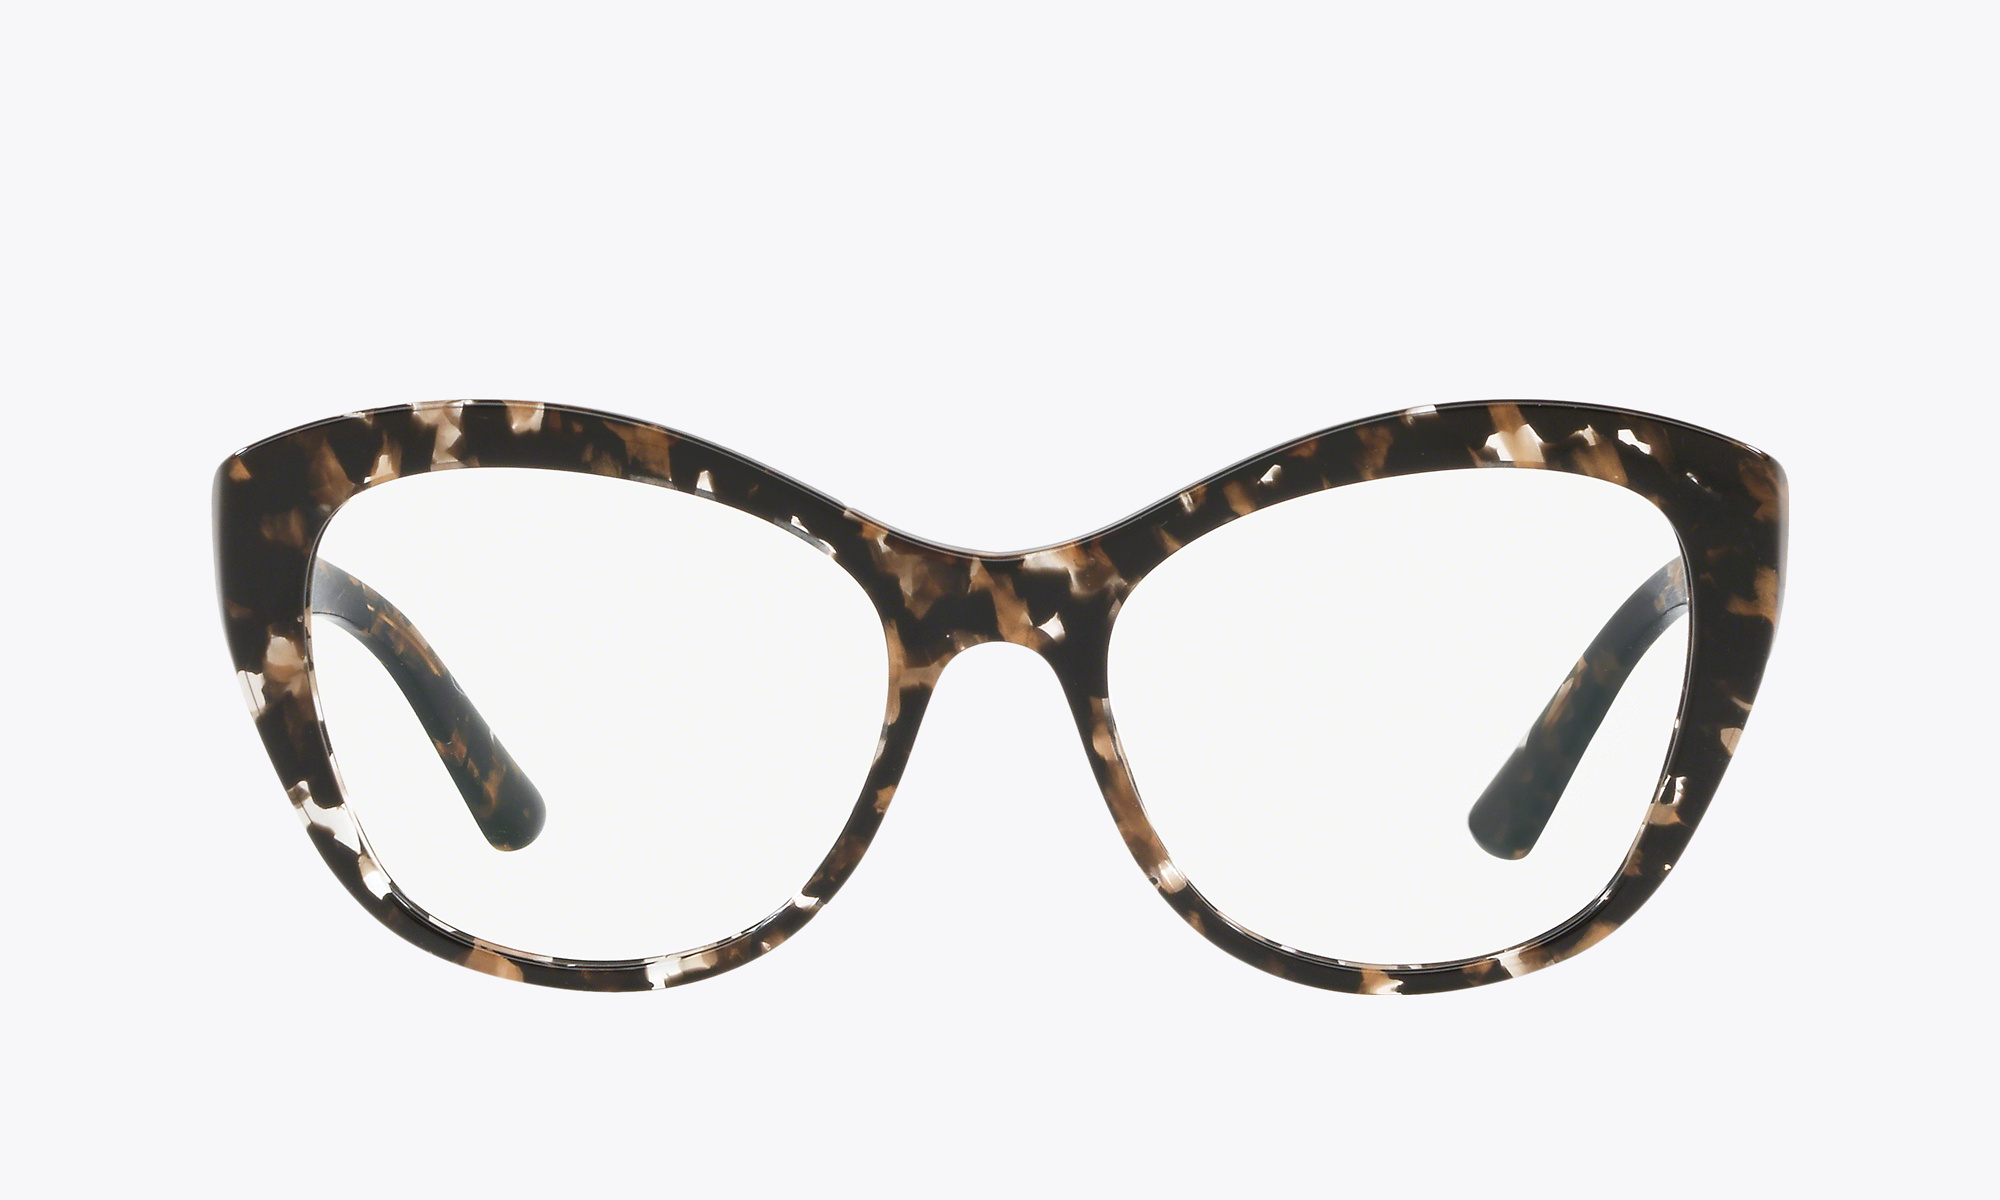 Image of Dolce & Gabbana DG3284 color Tortoise